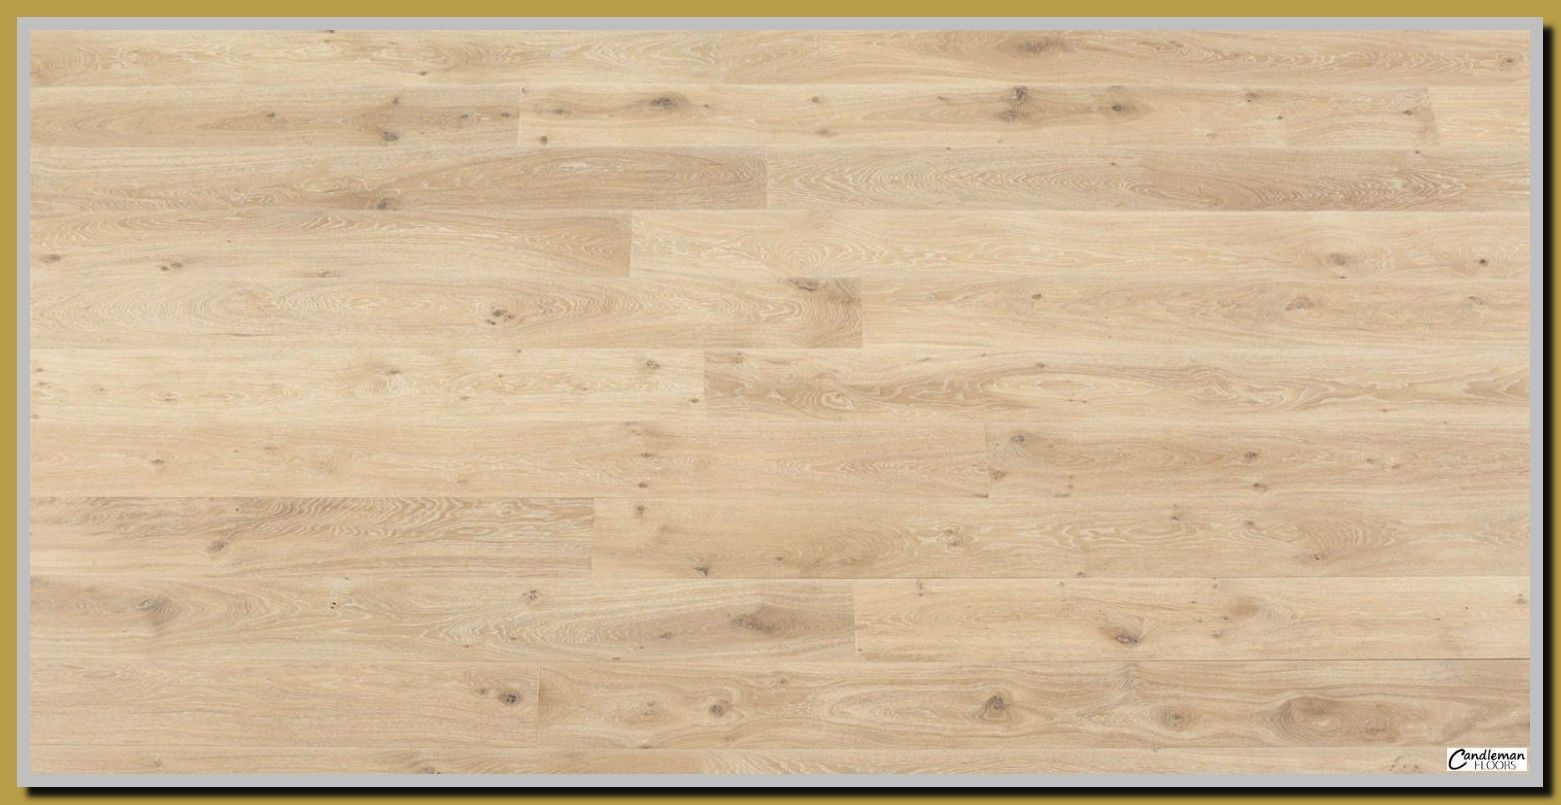 68 Reference Of Light Oak Texture Seamless In 2020 Wood Floor Texture Seamless Oak Hardwood Flooring Oak Plank Floor